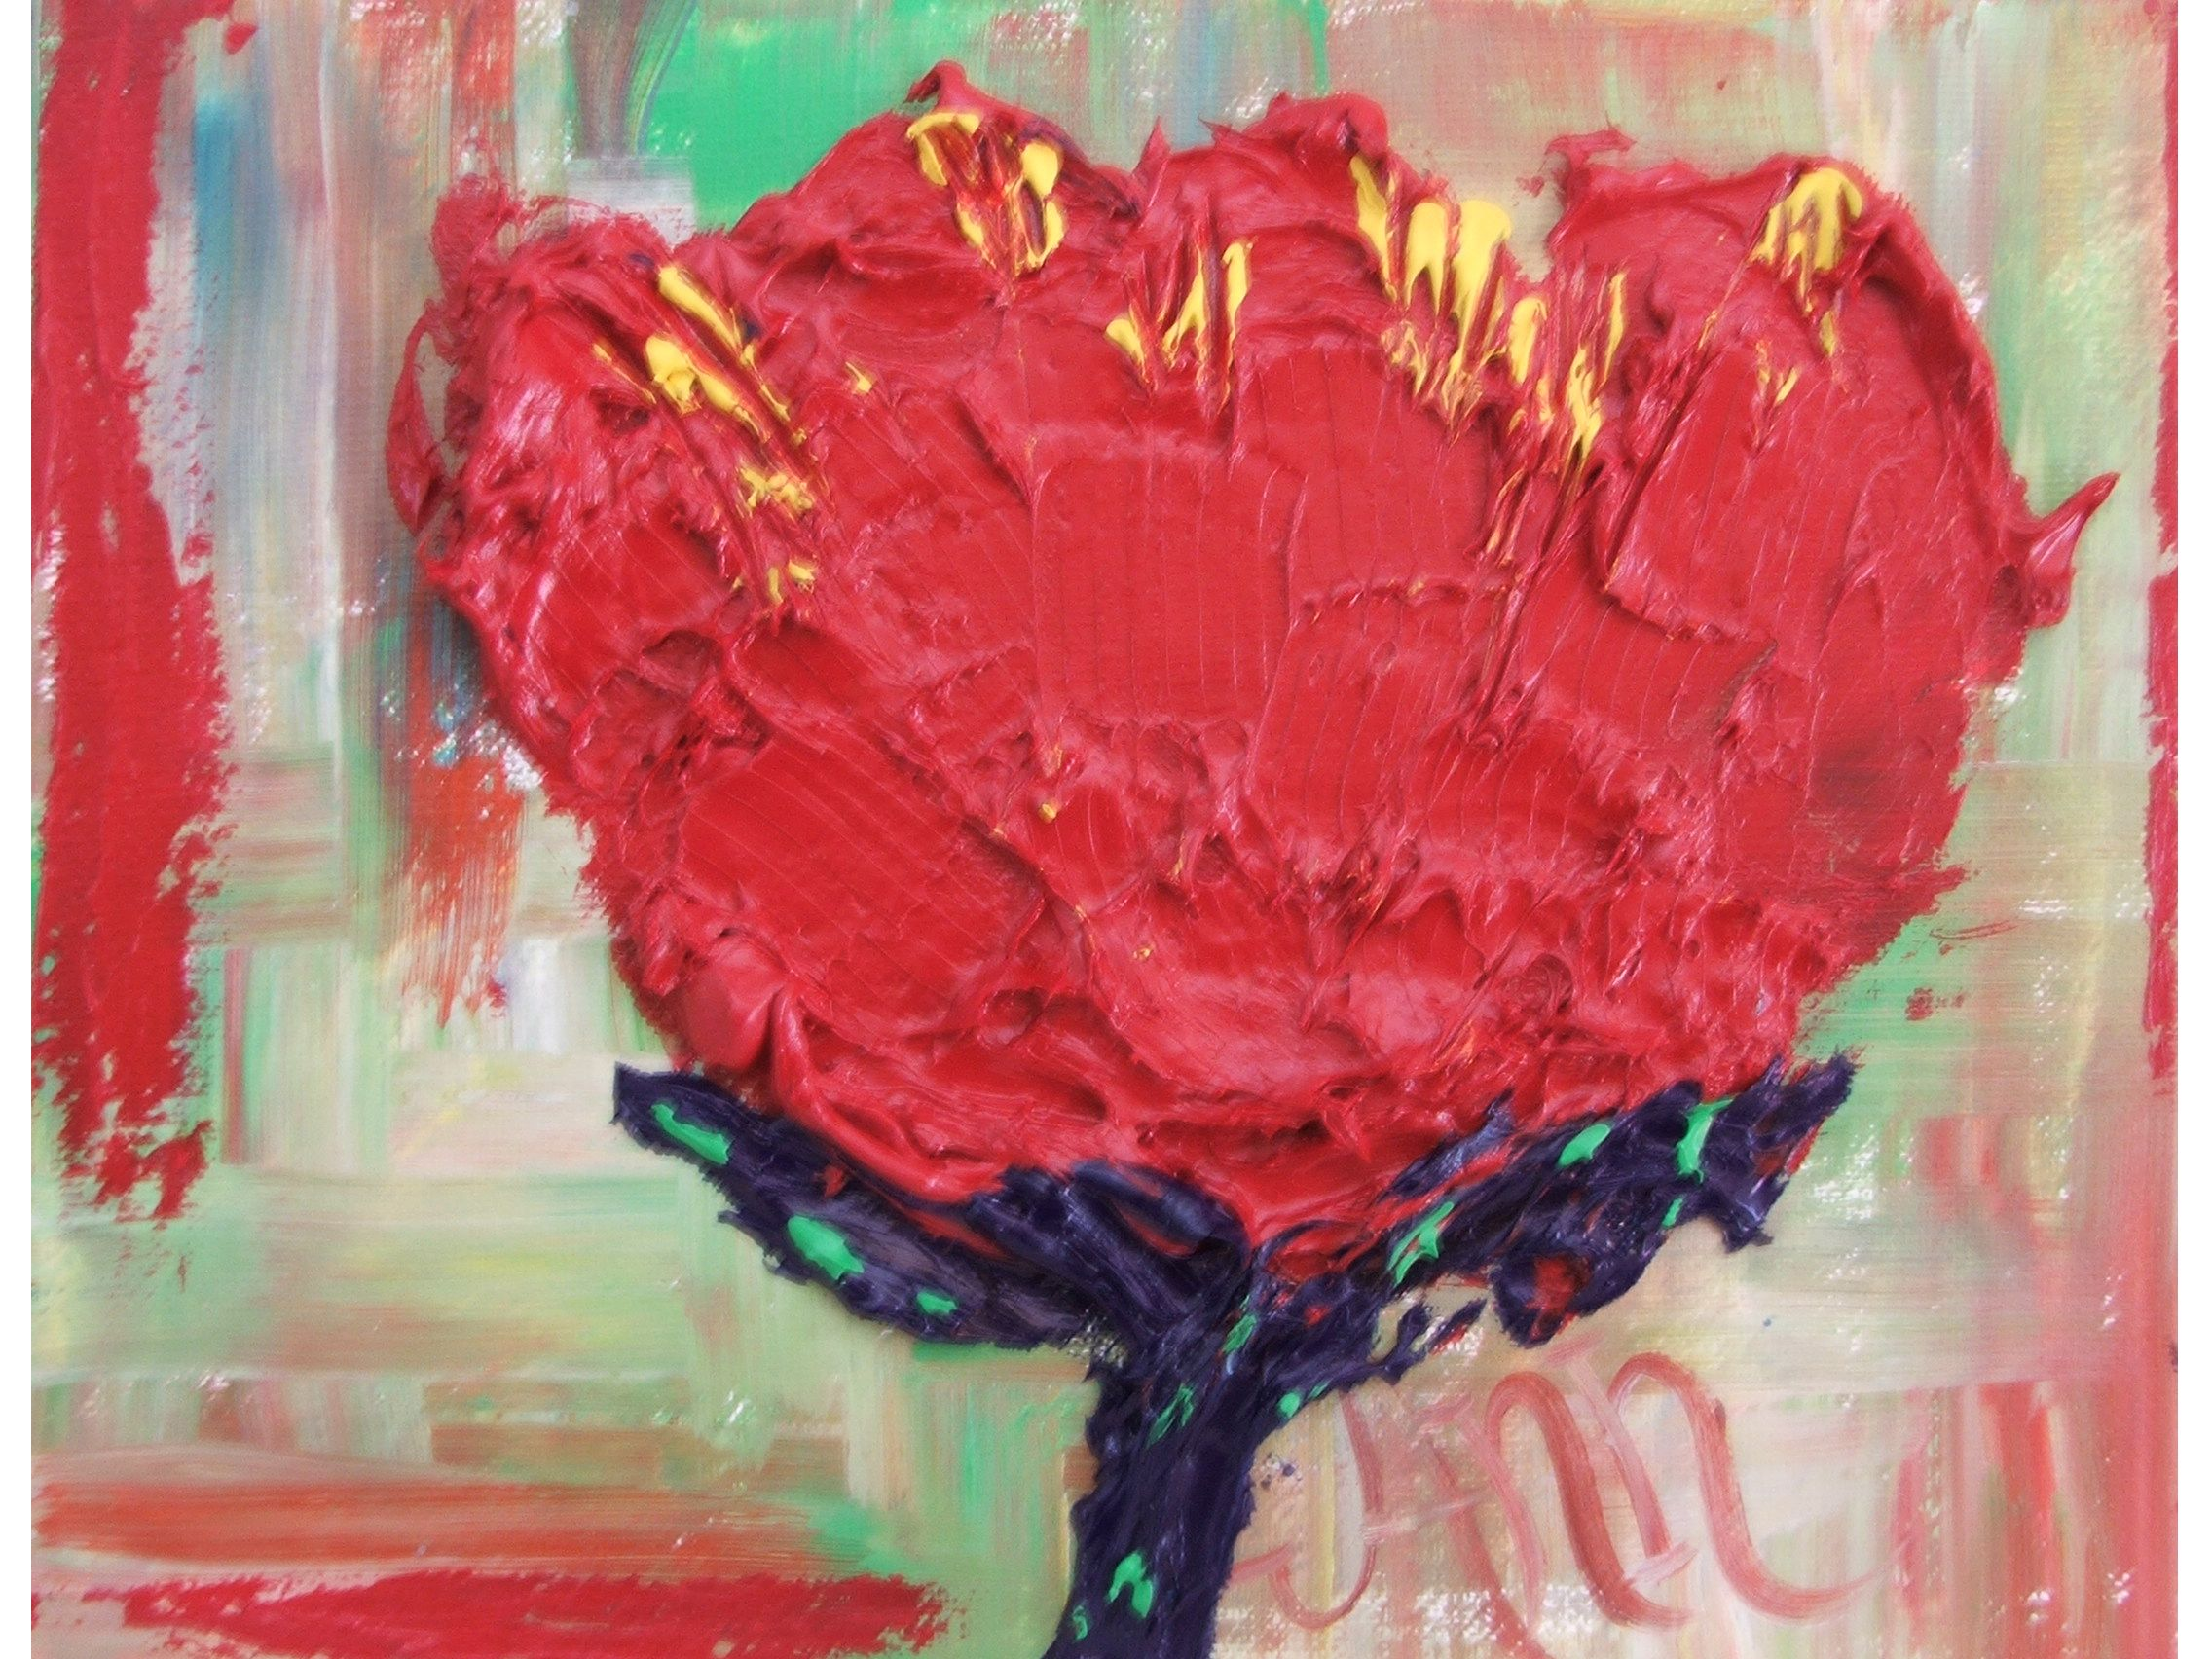 #Funky  #textured #red #flower #painting by #Ann #Lutz.